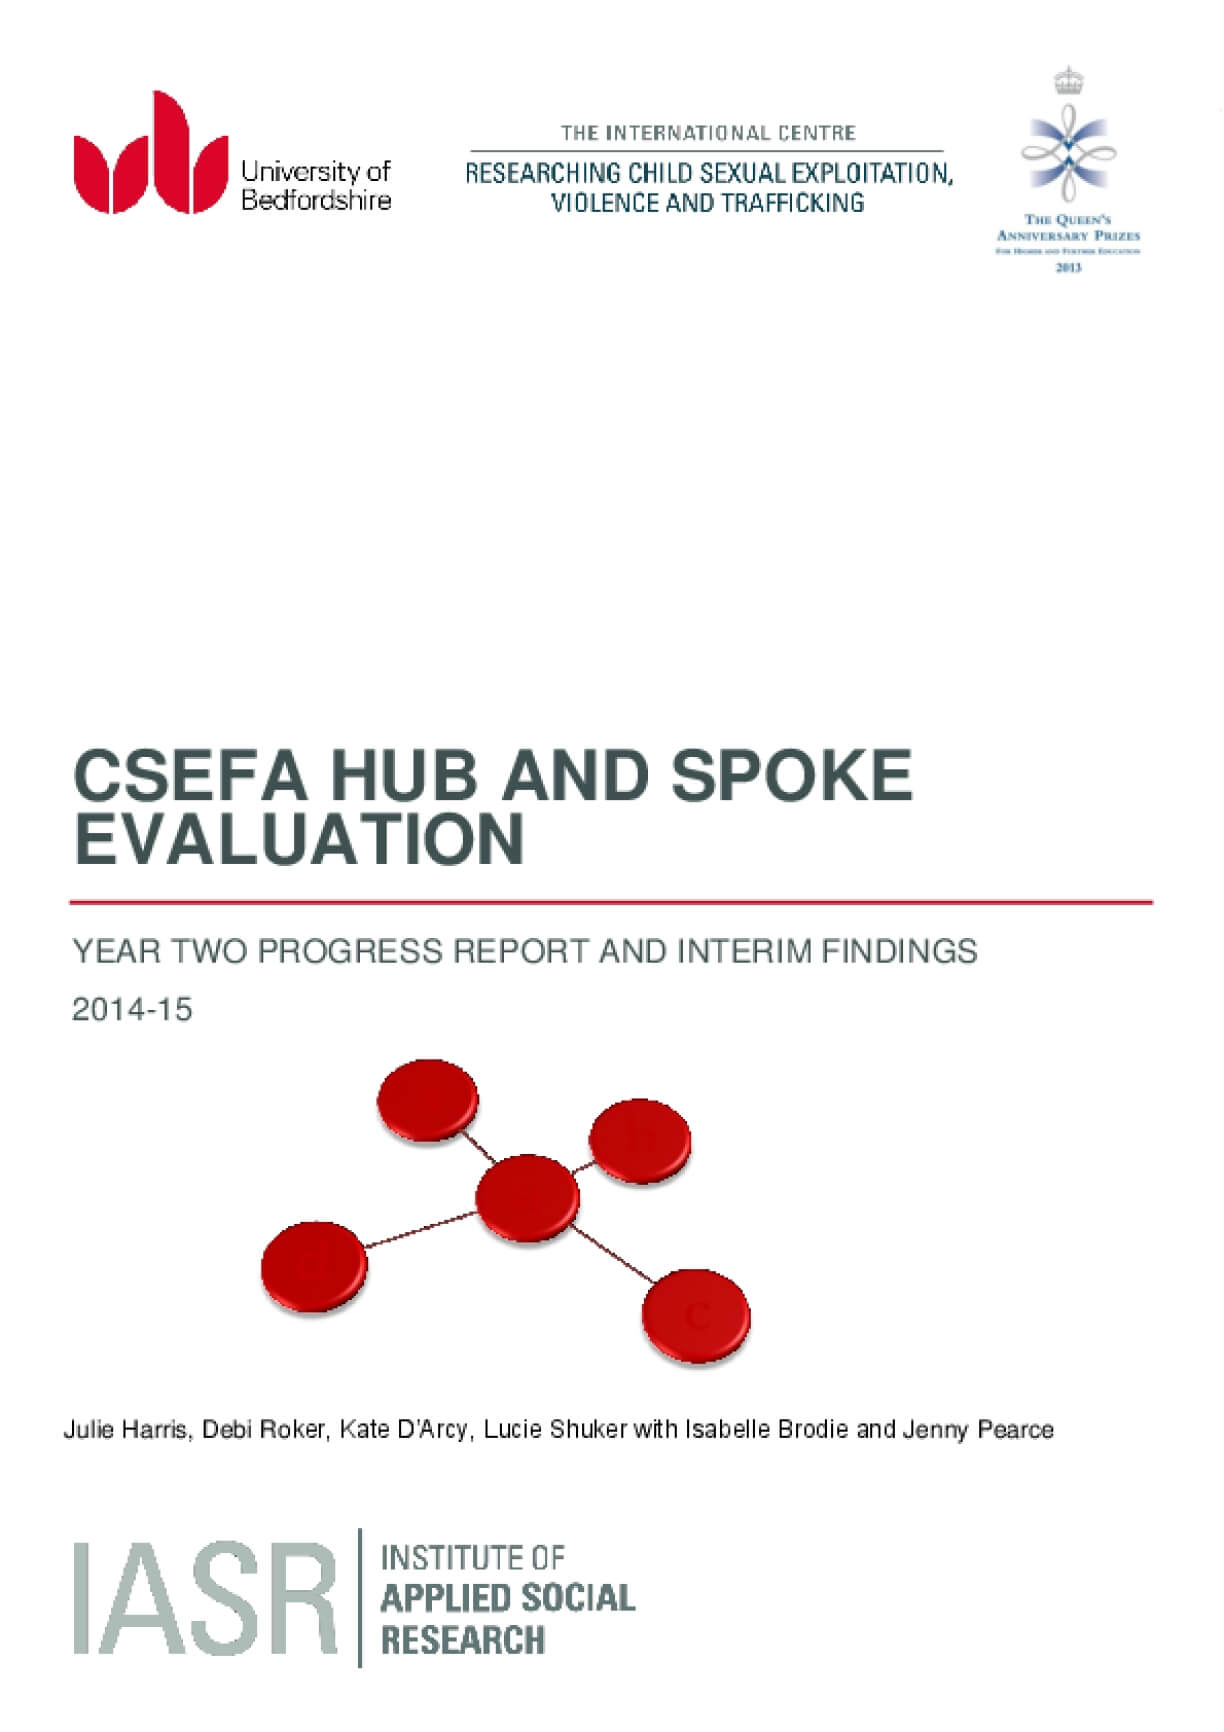 CSEFA Hub and Spoke Evaluation